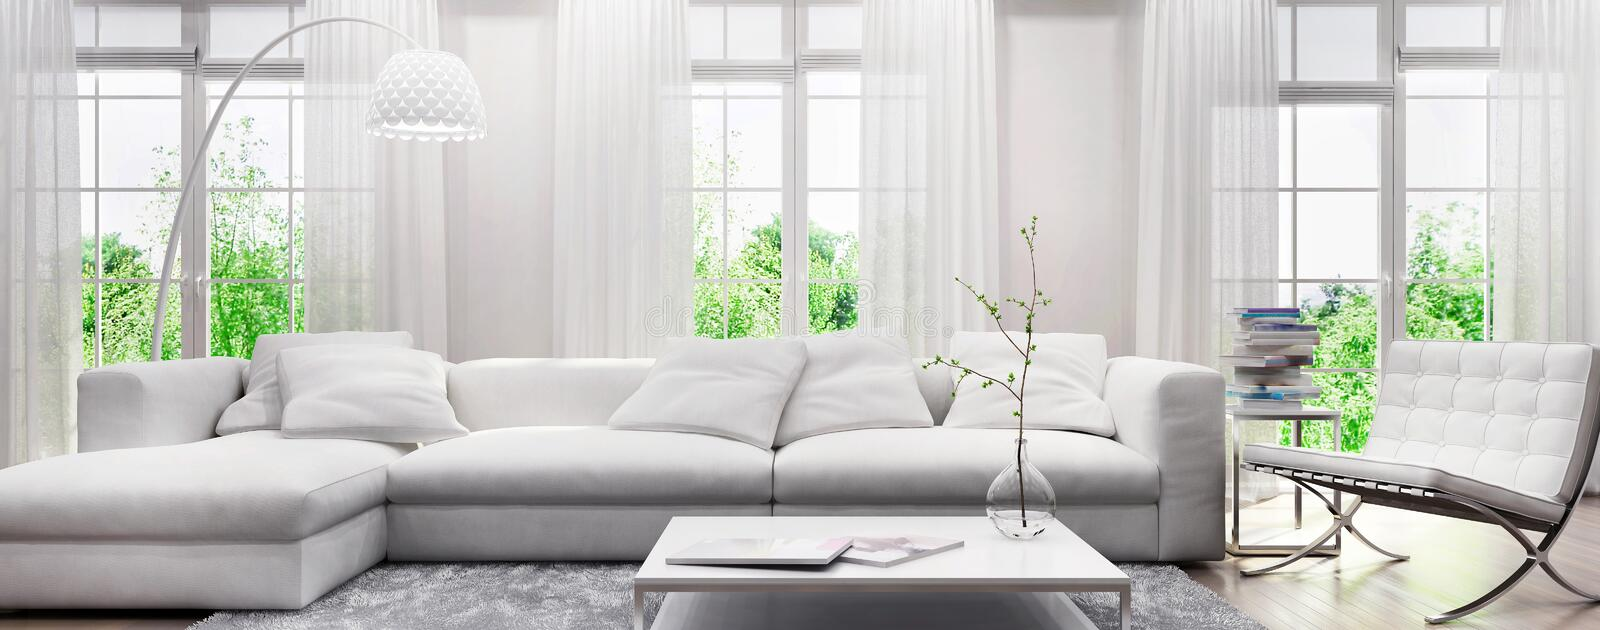 Modern white interior with a sofa and large windows stock image